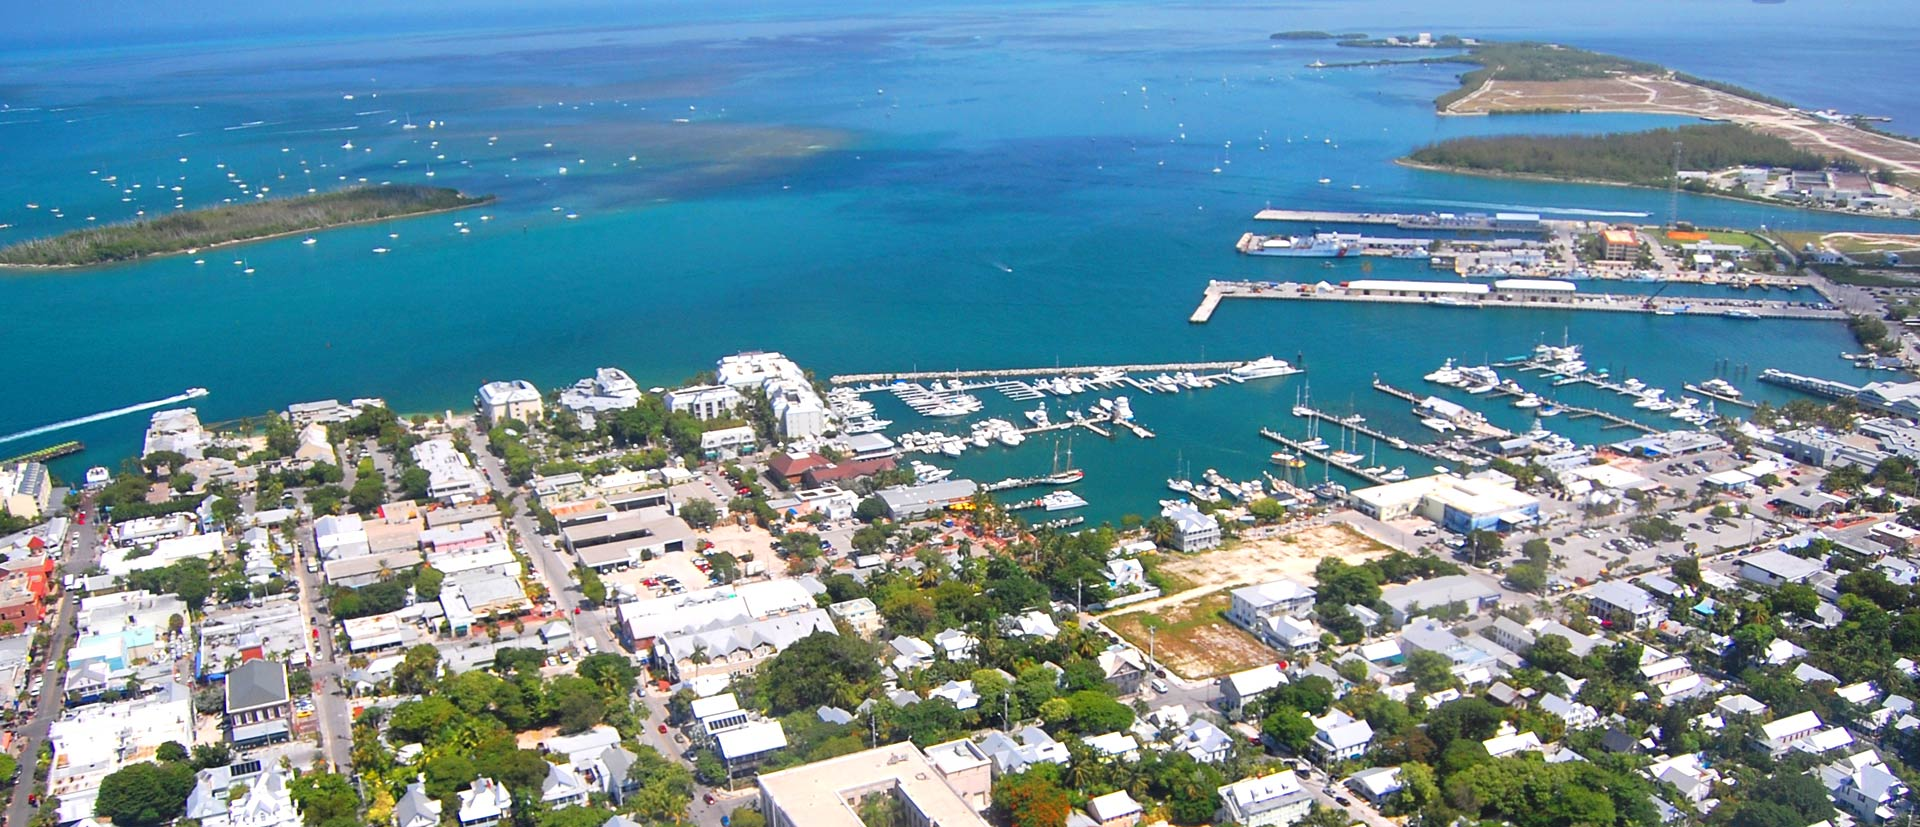 Aerial Photo of Key West During The Day